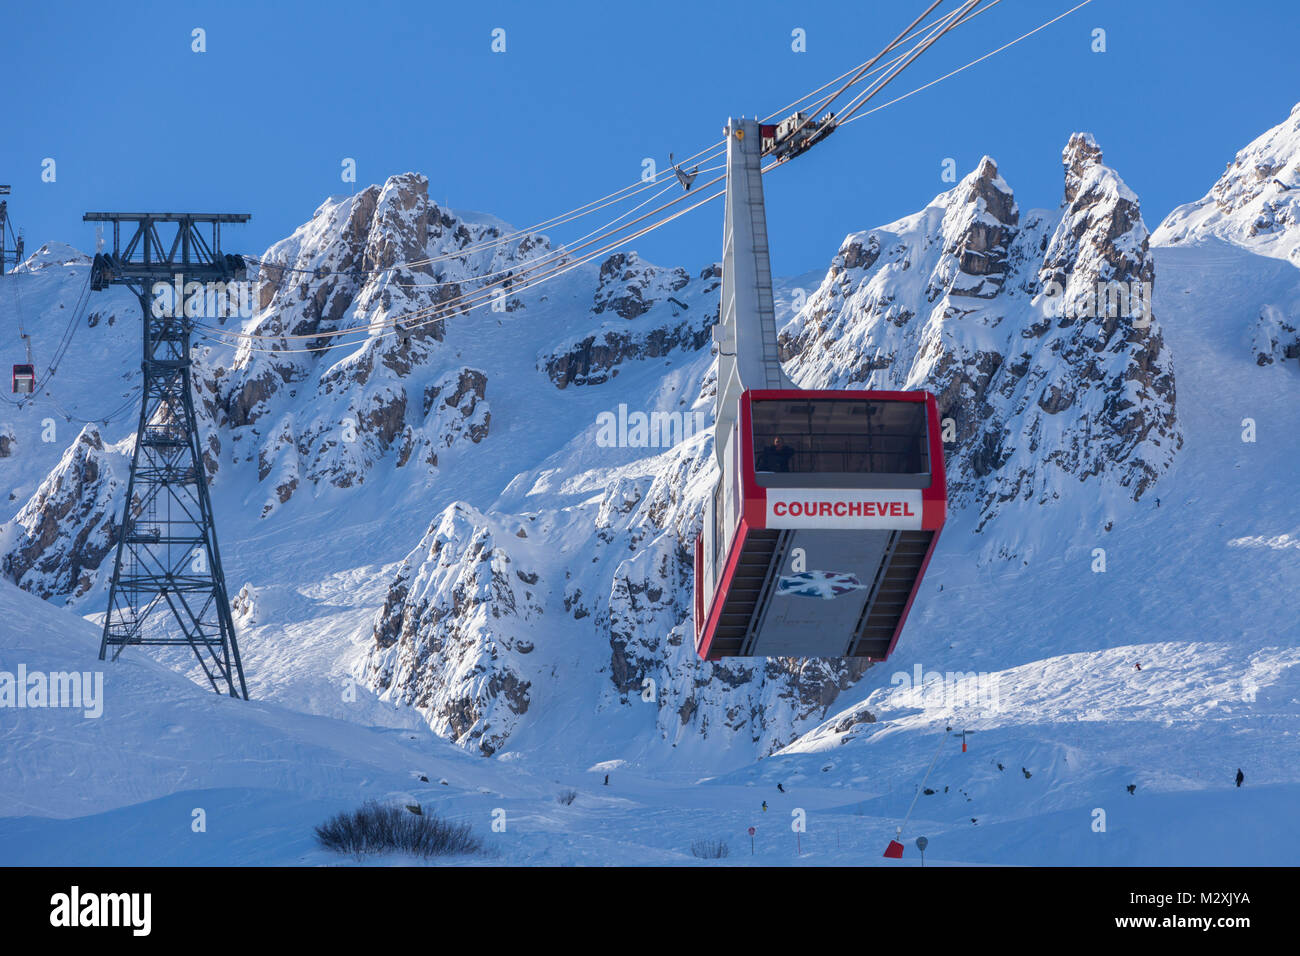 Gondola, mountains and piste, Courchevel, Savoie, France. - Stock Image